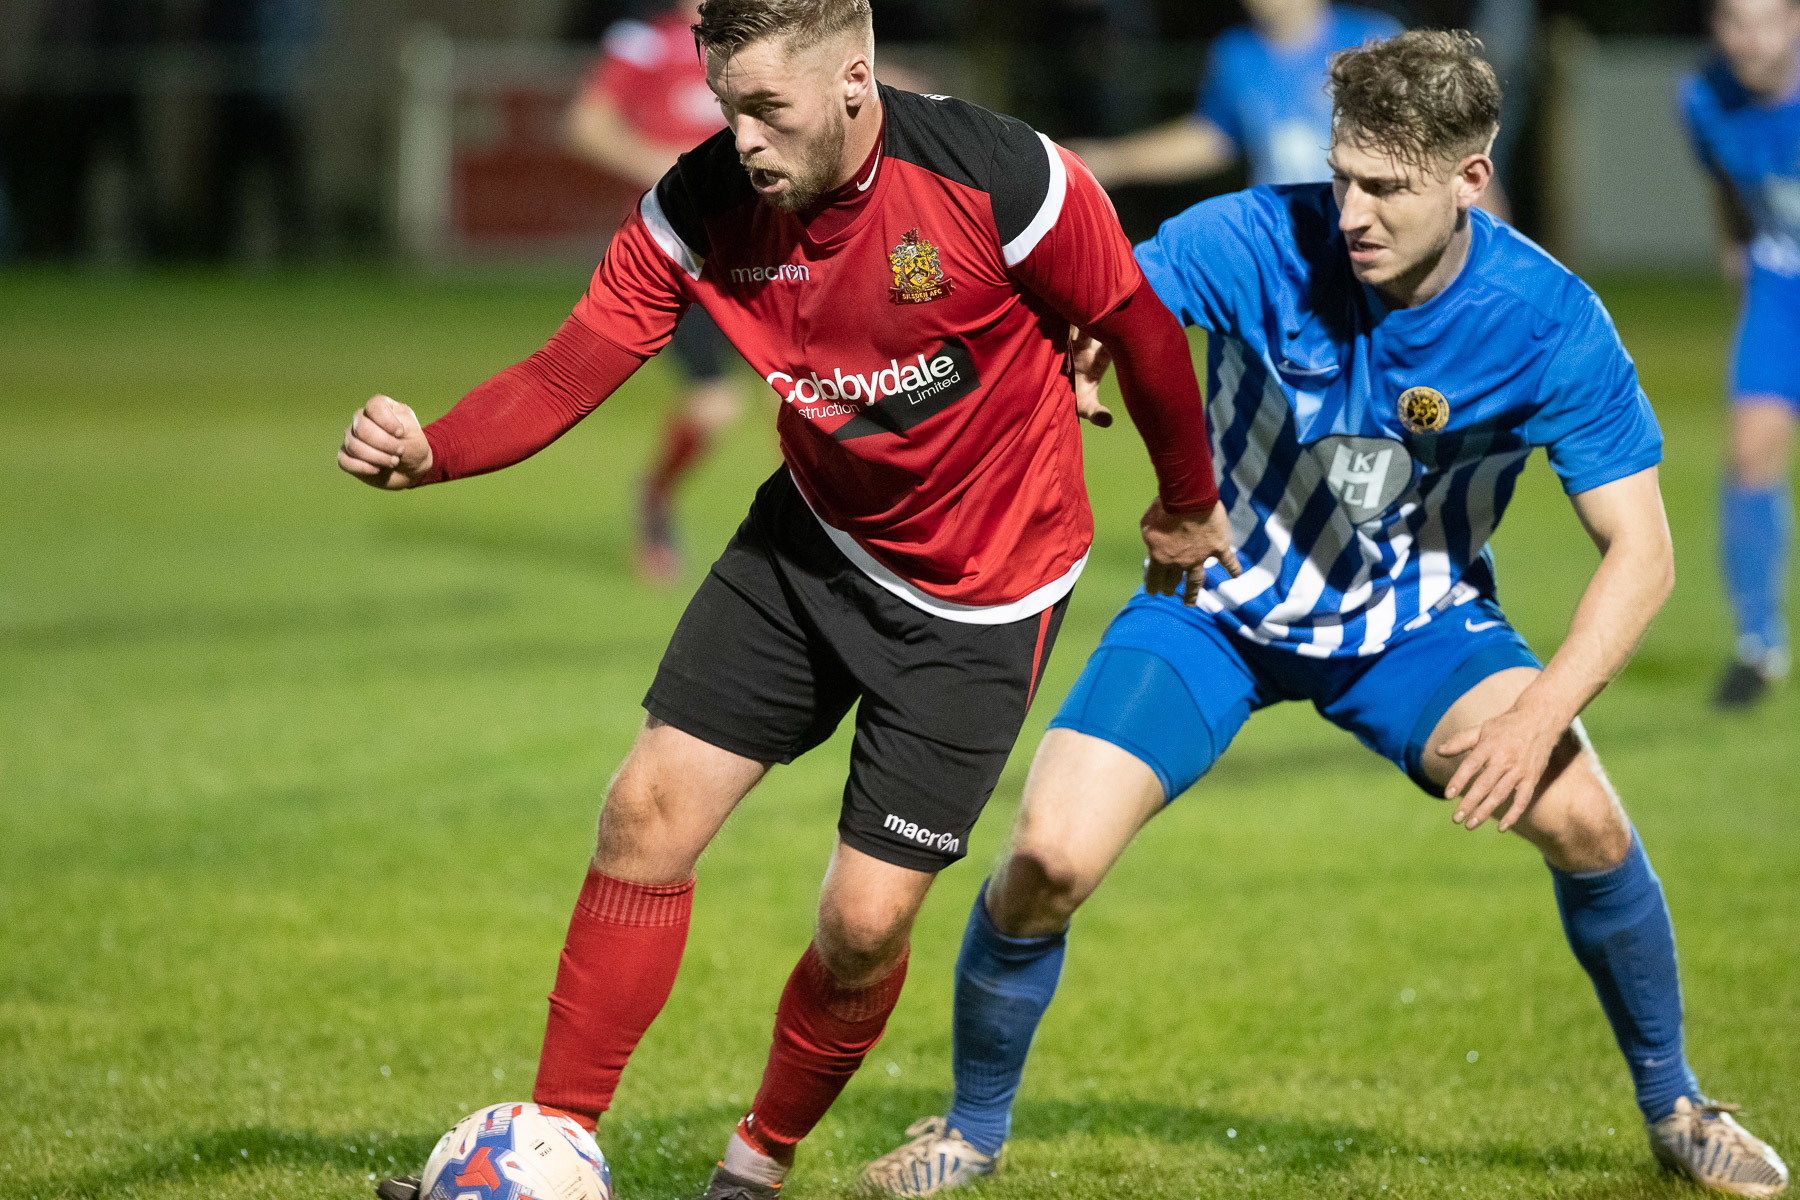 Aidan Kirby scored the winner for Silsden at Squires Gate. Picture: David Brett